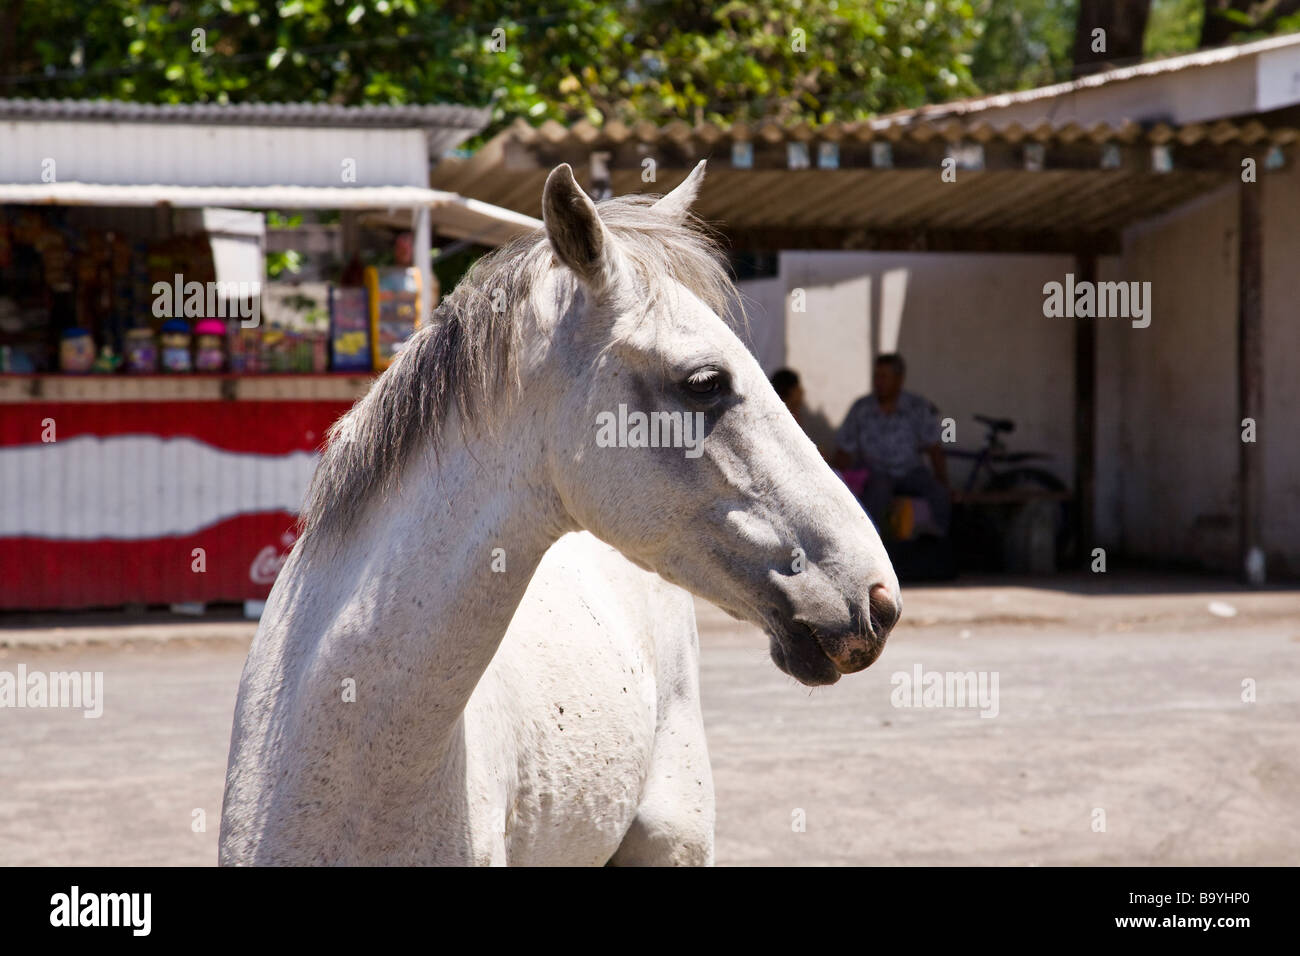 A white horse in the street in Moyogalpa on Ometepe Island, Nicaragua. Stock Photo